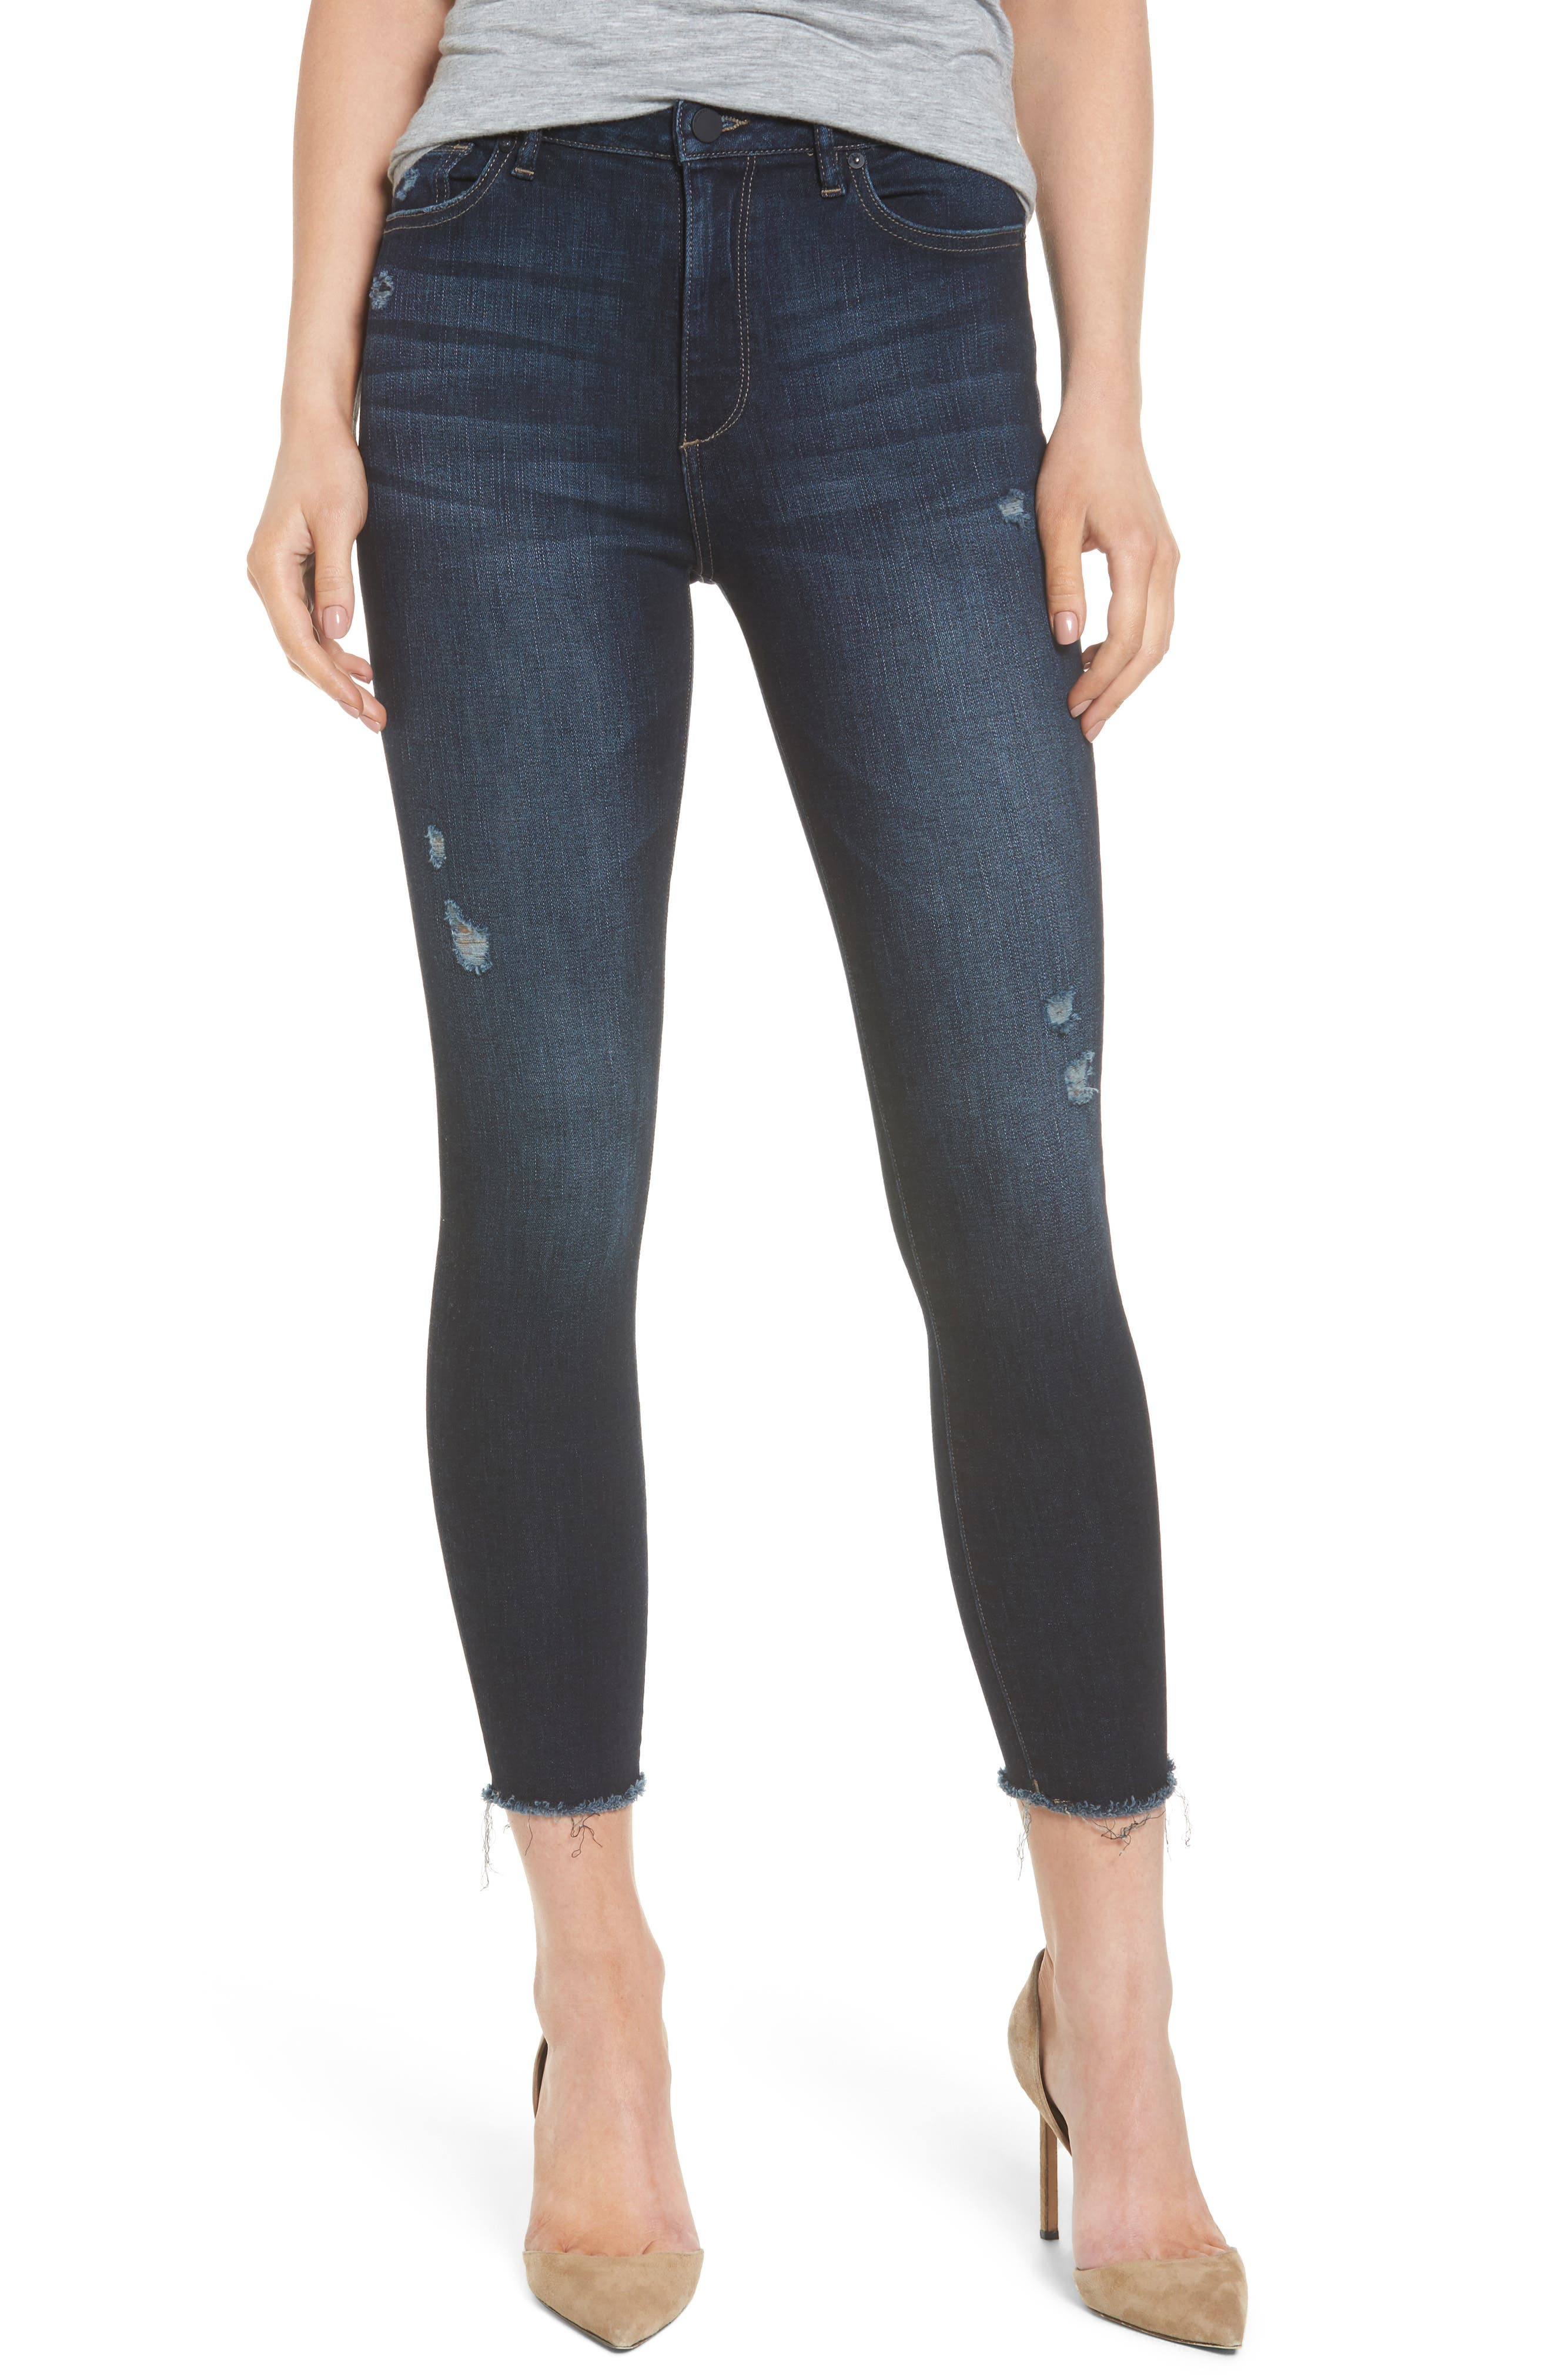 Chrissy High Waist Crop Skinny Jeans,                             Main thumbnail 1, color,                             405